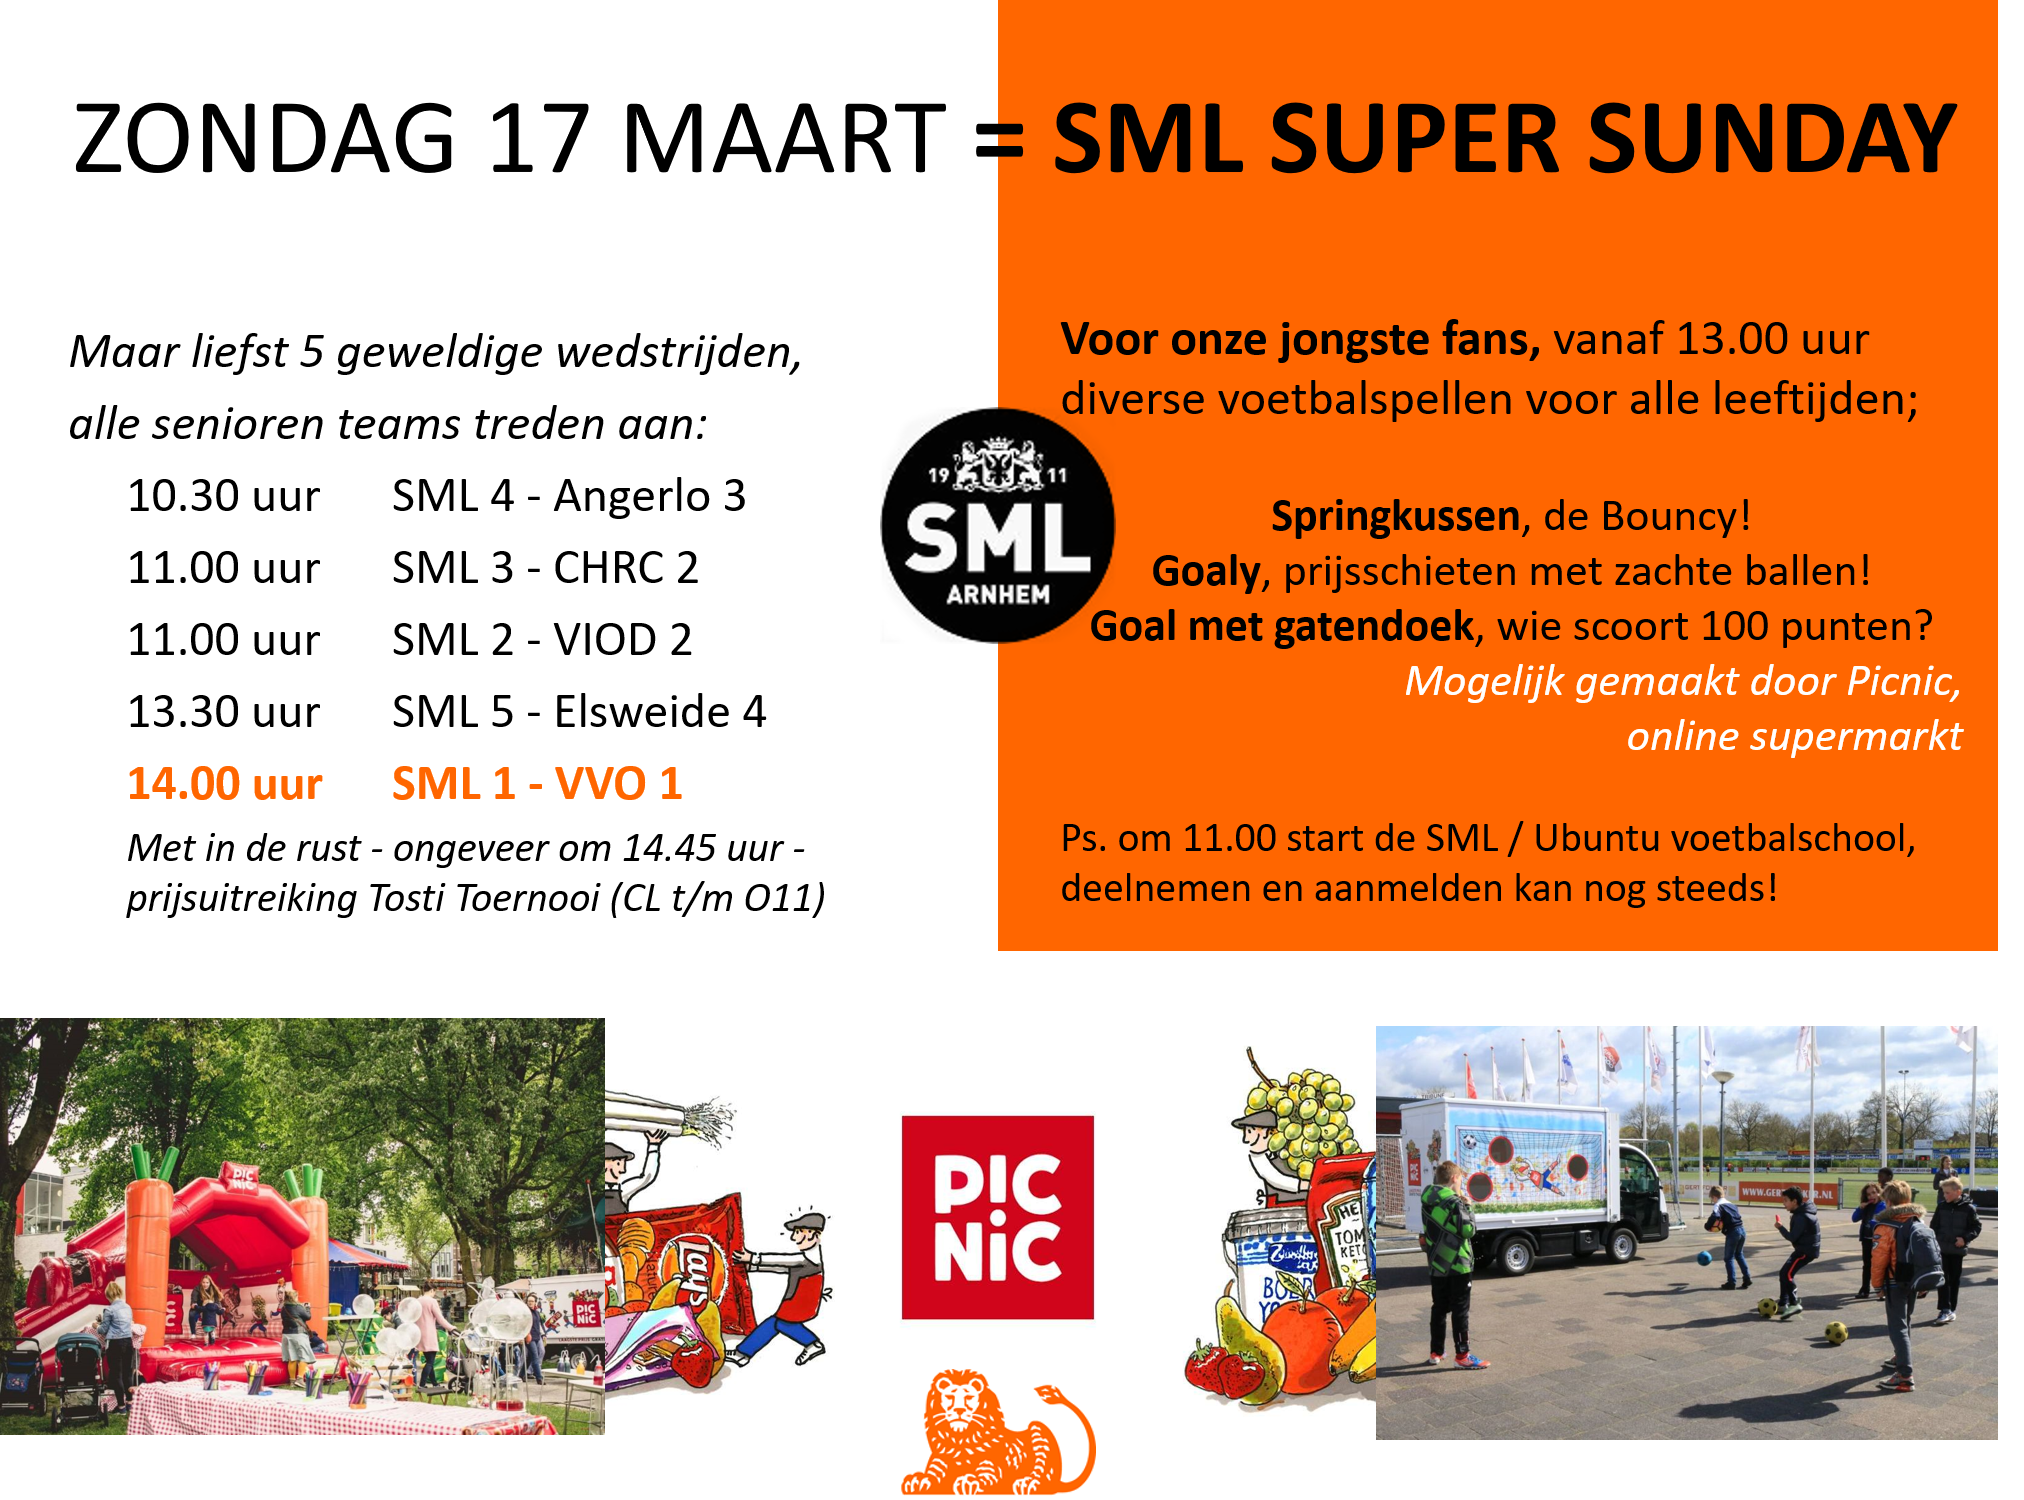 Supersunday 17 maart